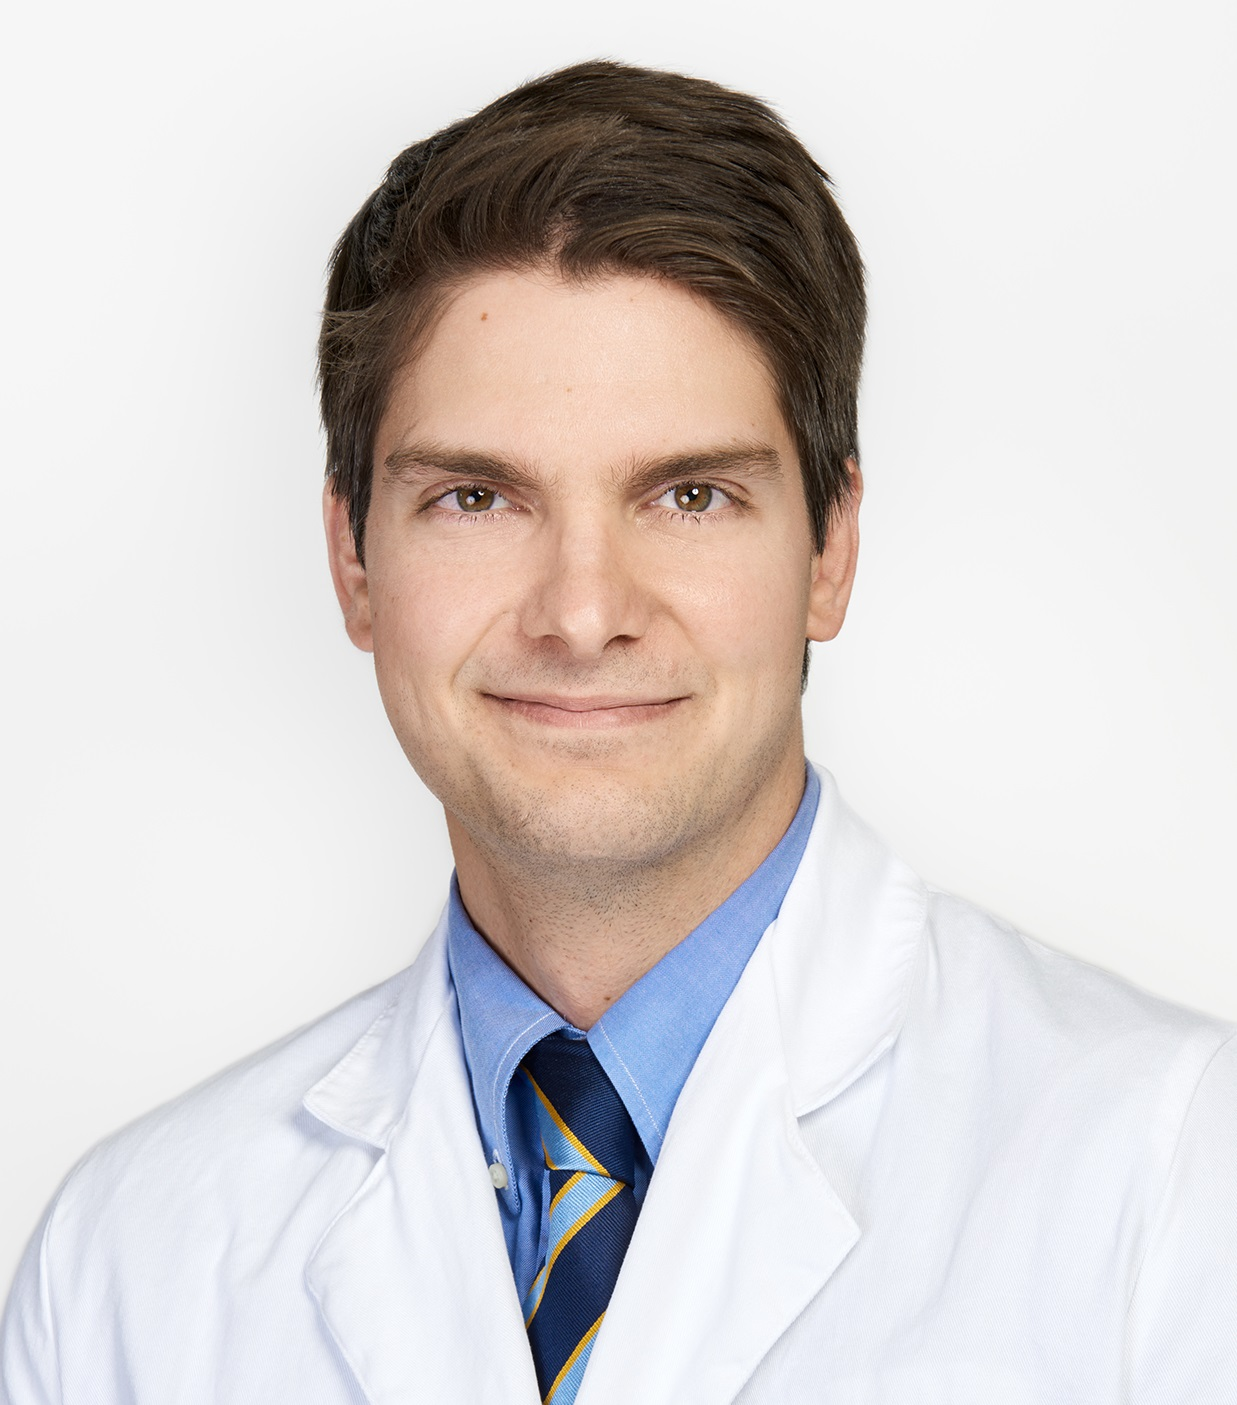 Profile photo of Sean Marzolf, MD